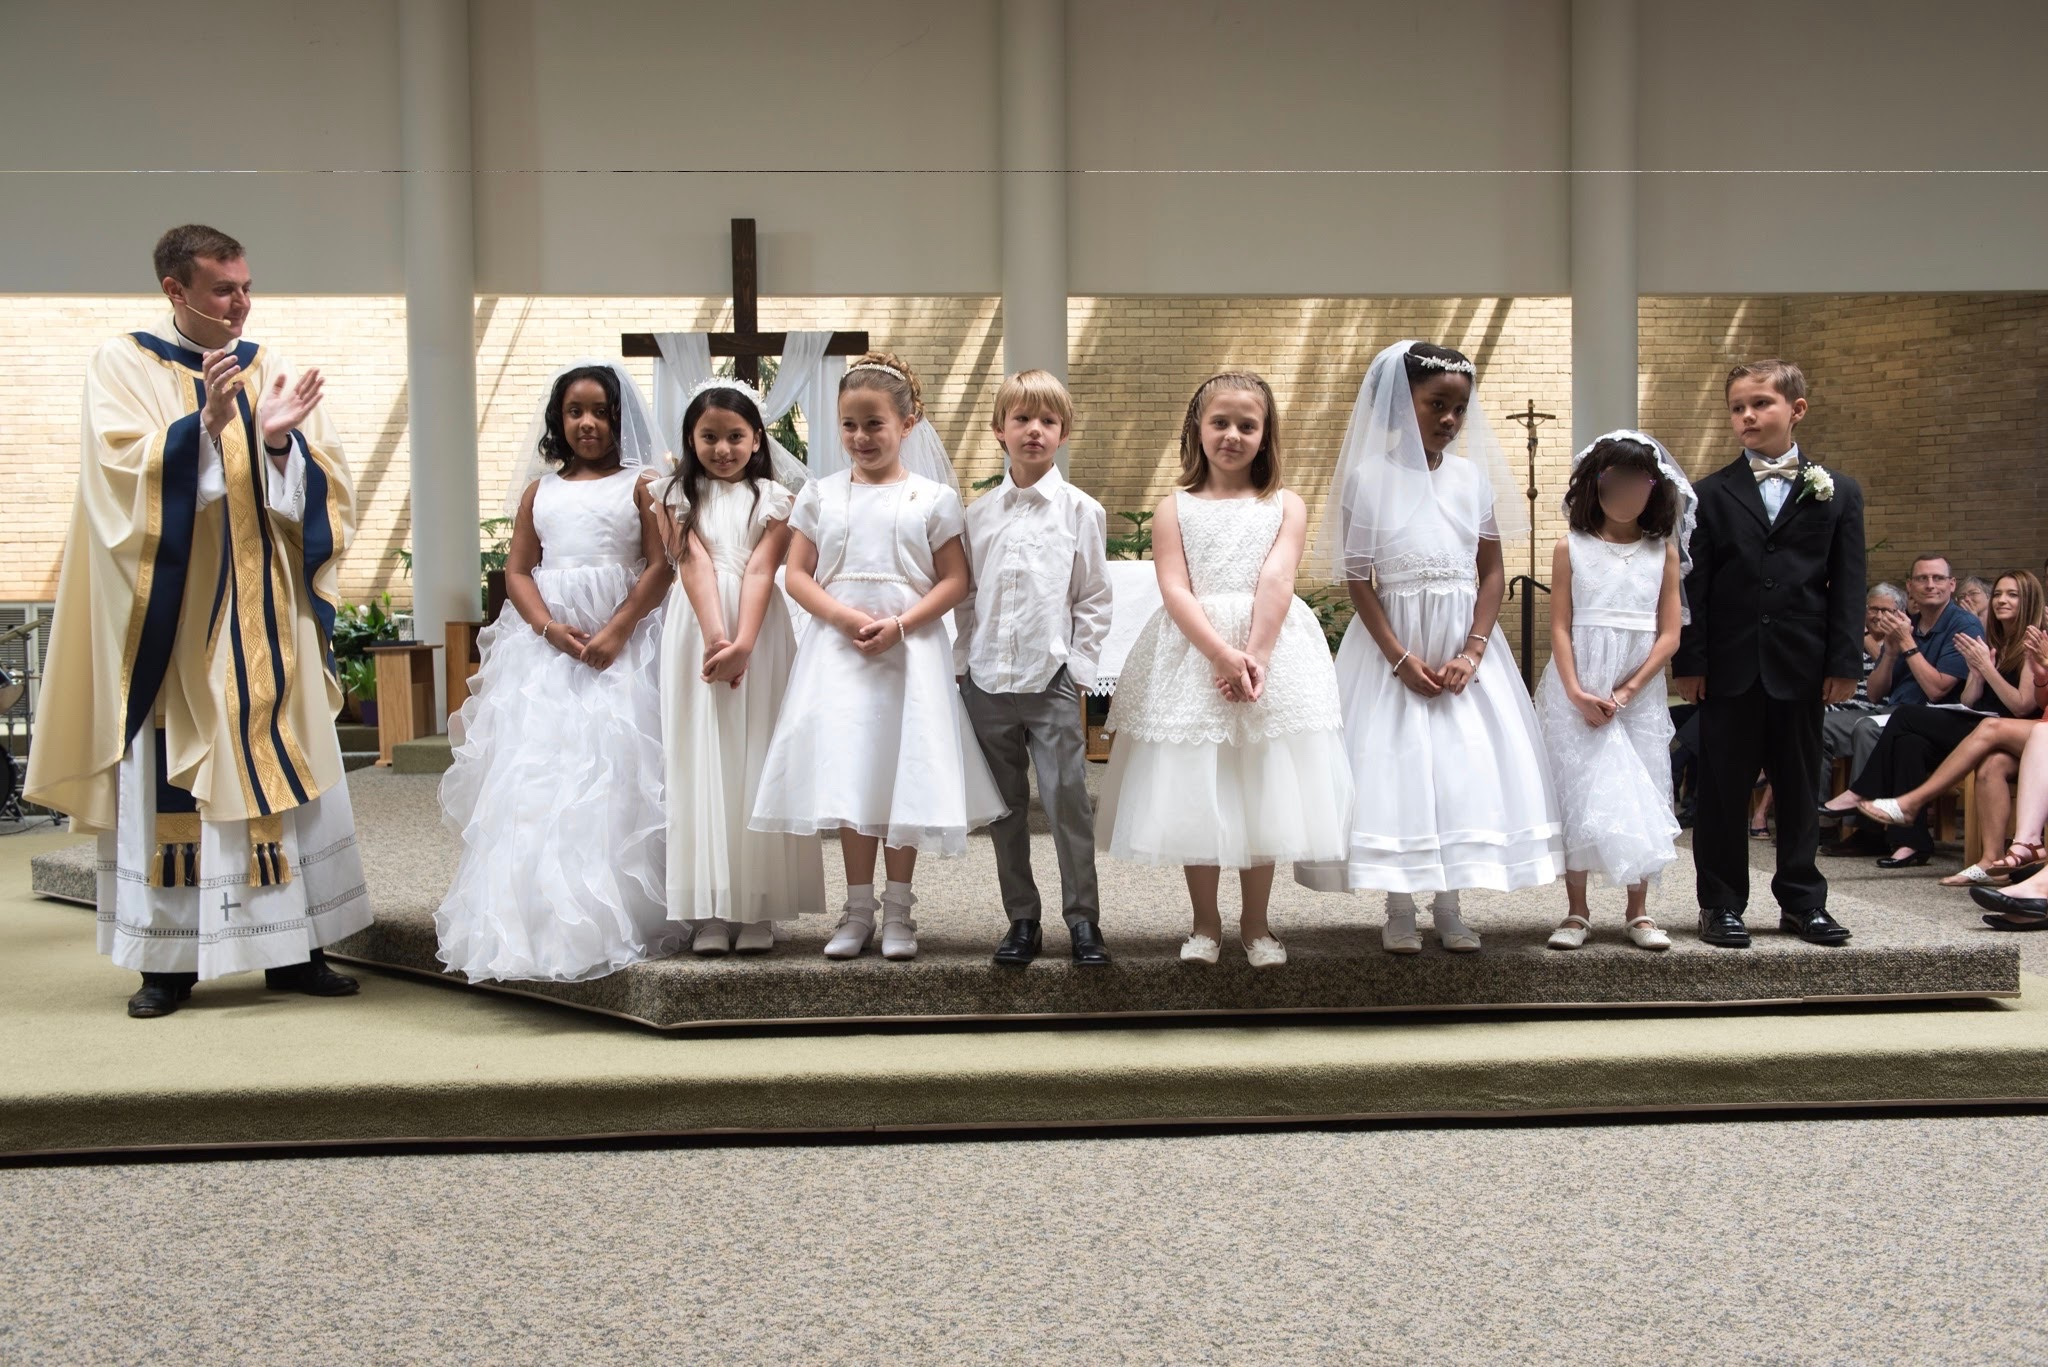 First Communion - April 30, 2017